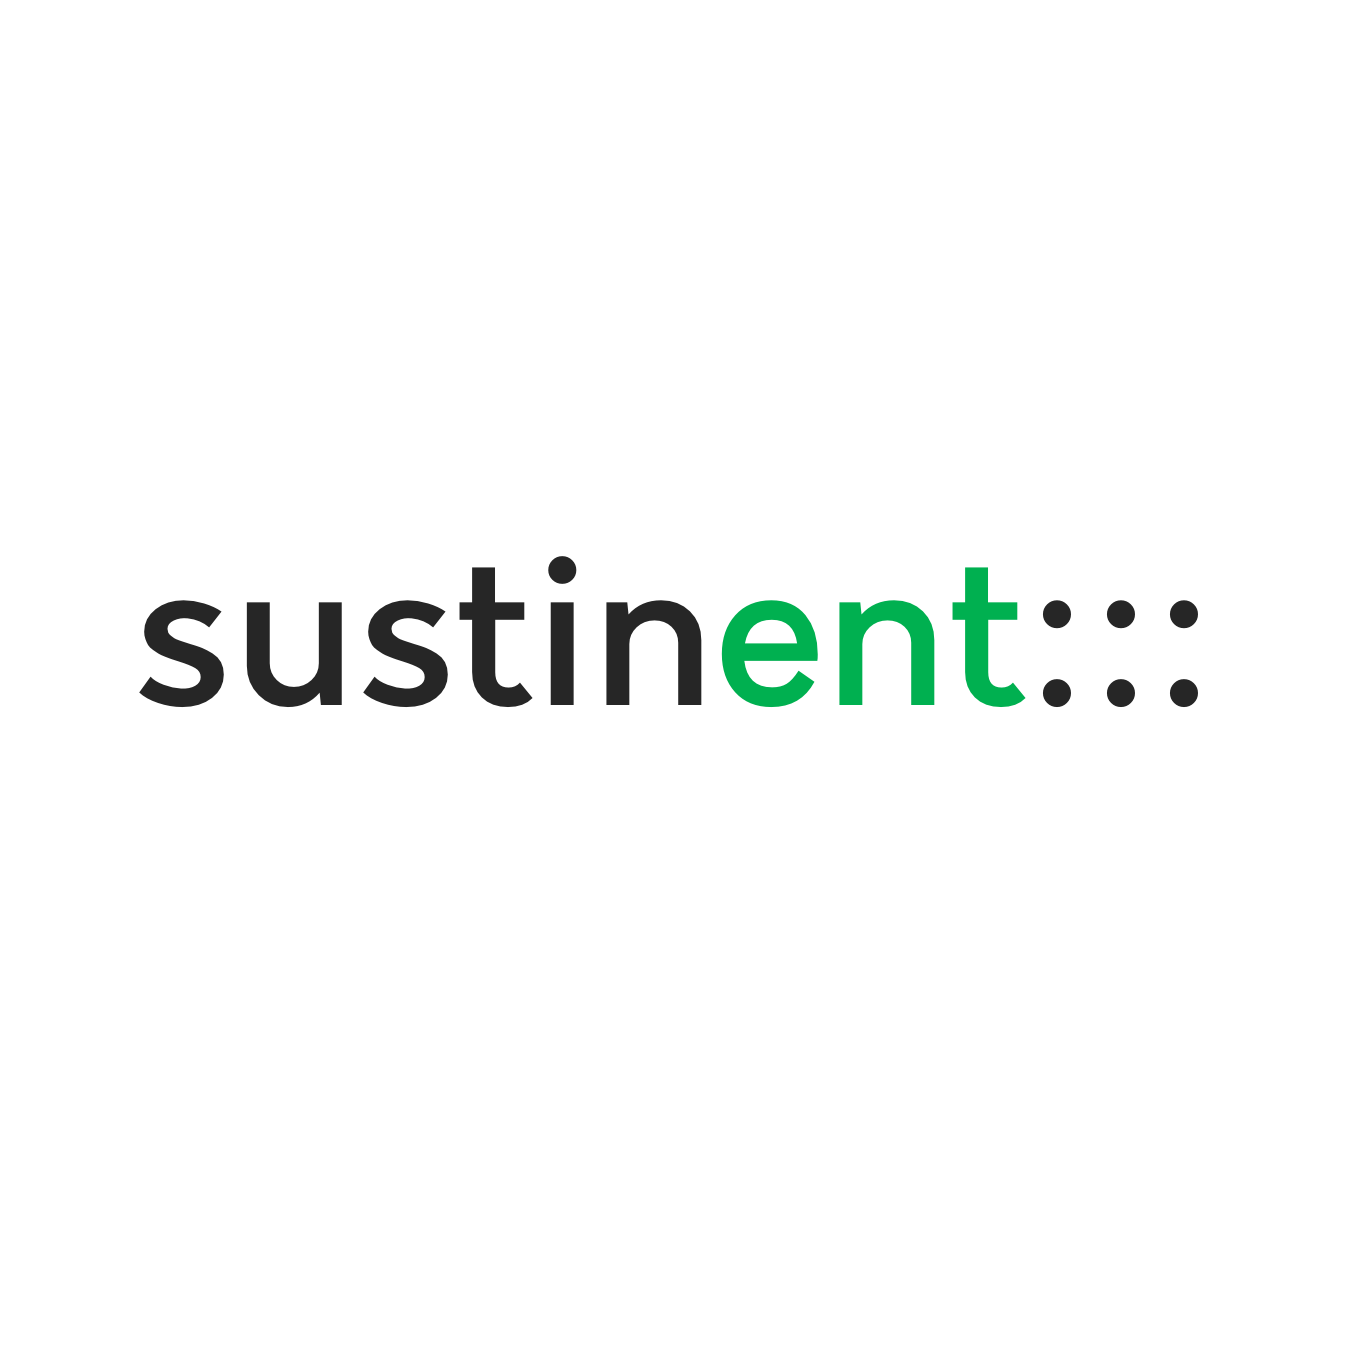 Sustinent - square.png